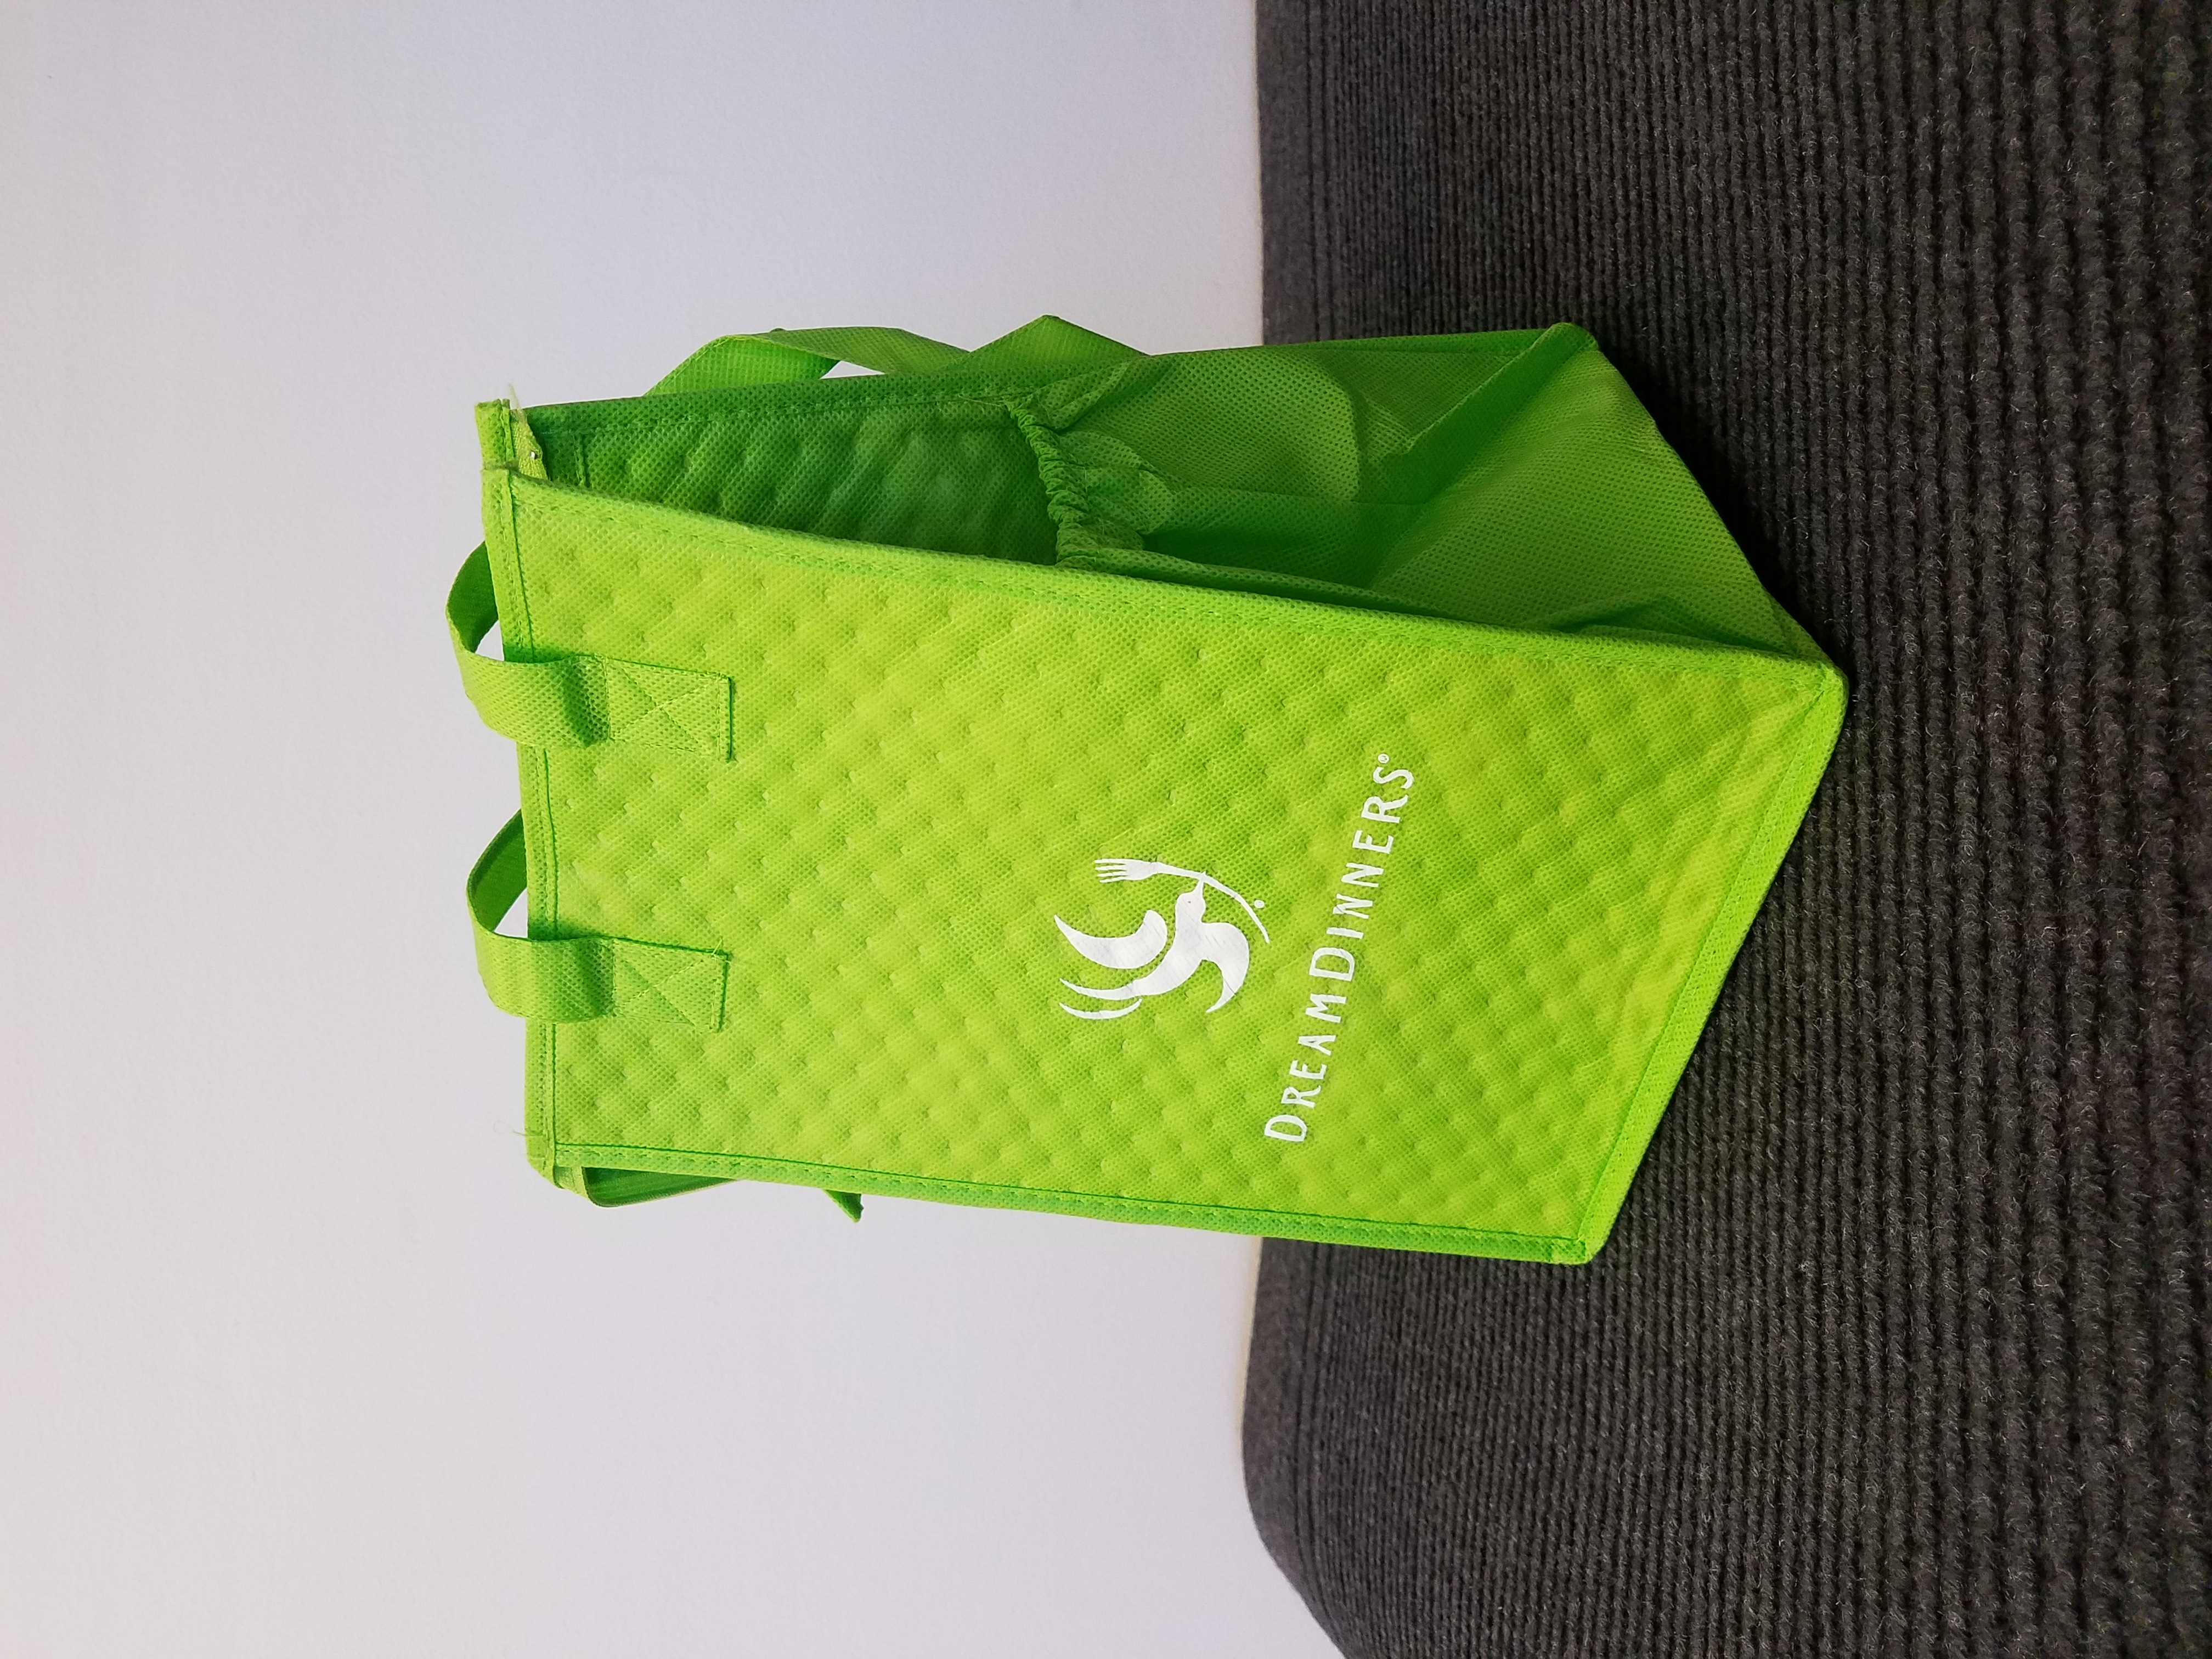 Website Tote Bag Image (DreamDinners Light Green Thermal)